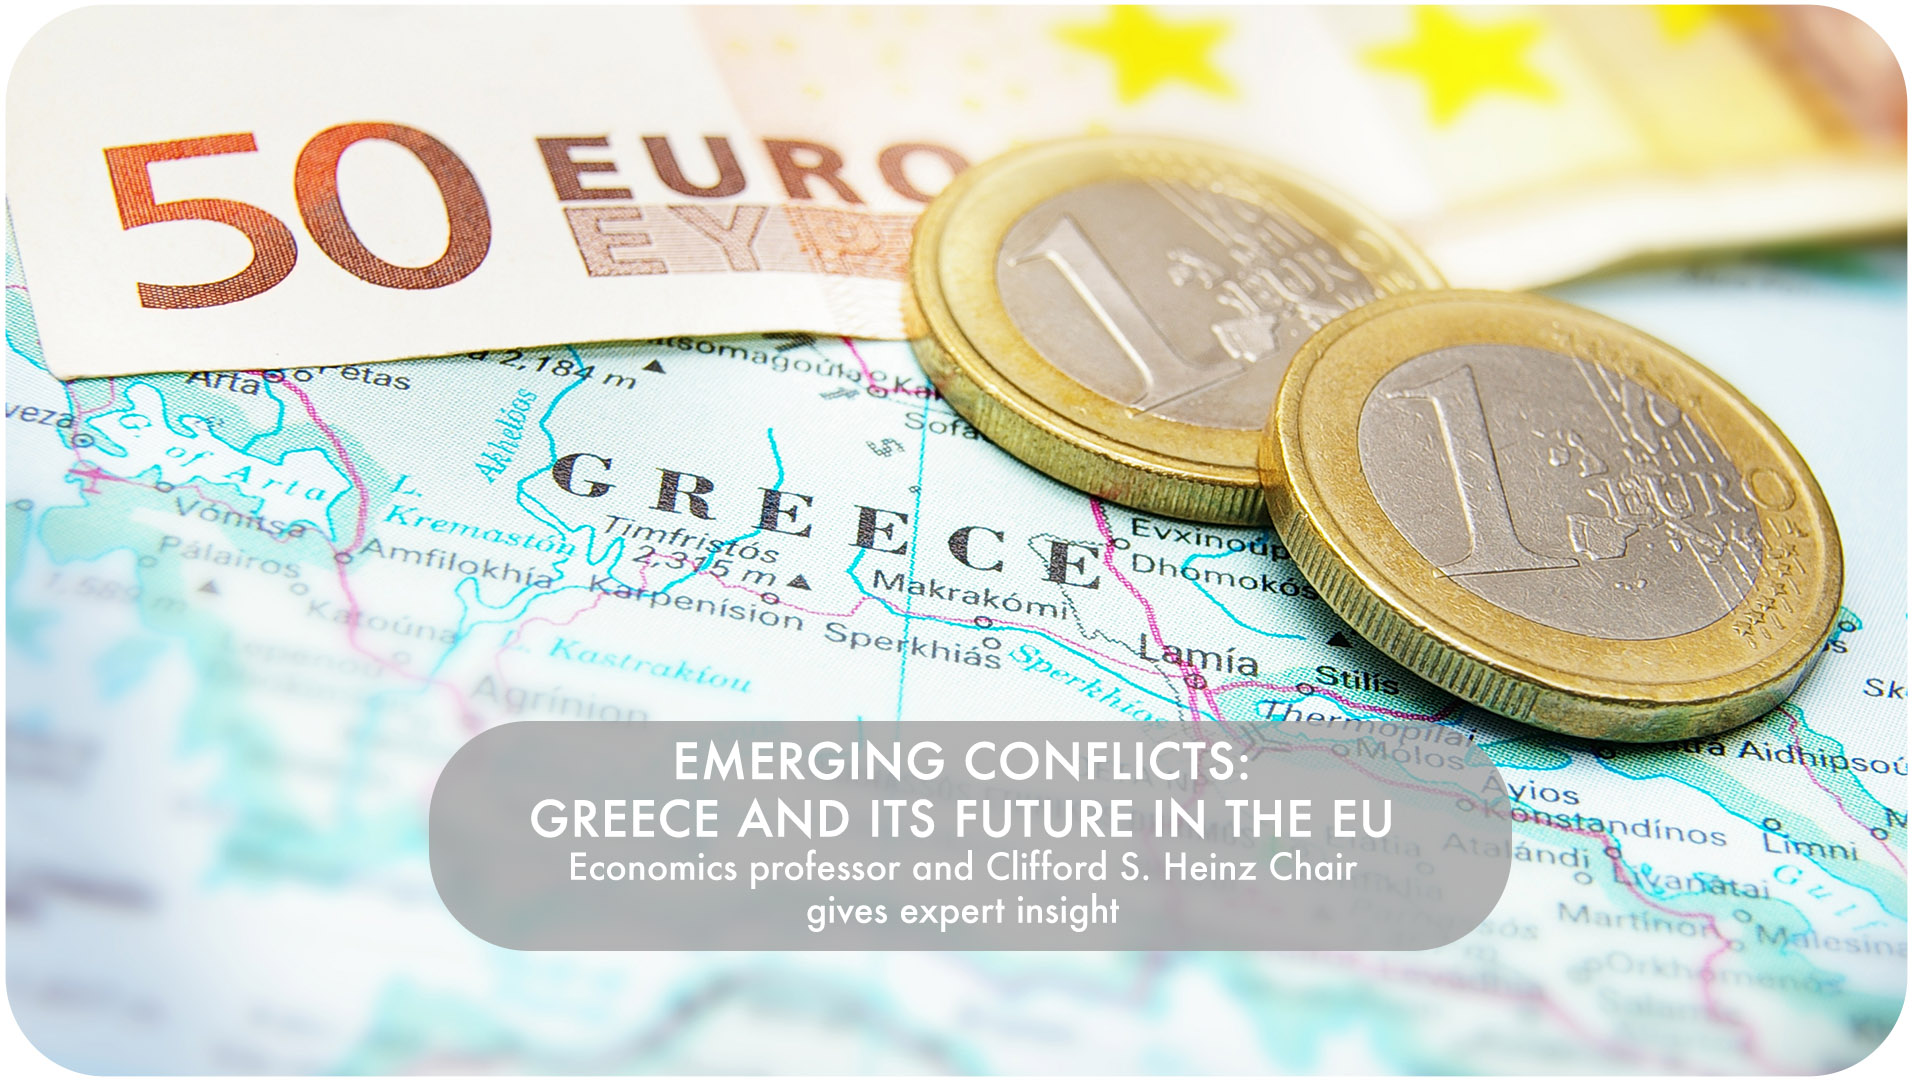 greece and its future in the EU